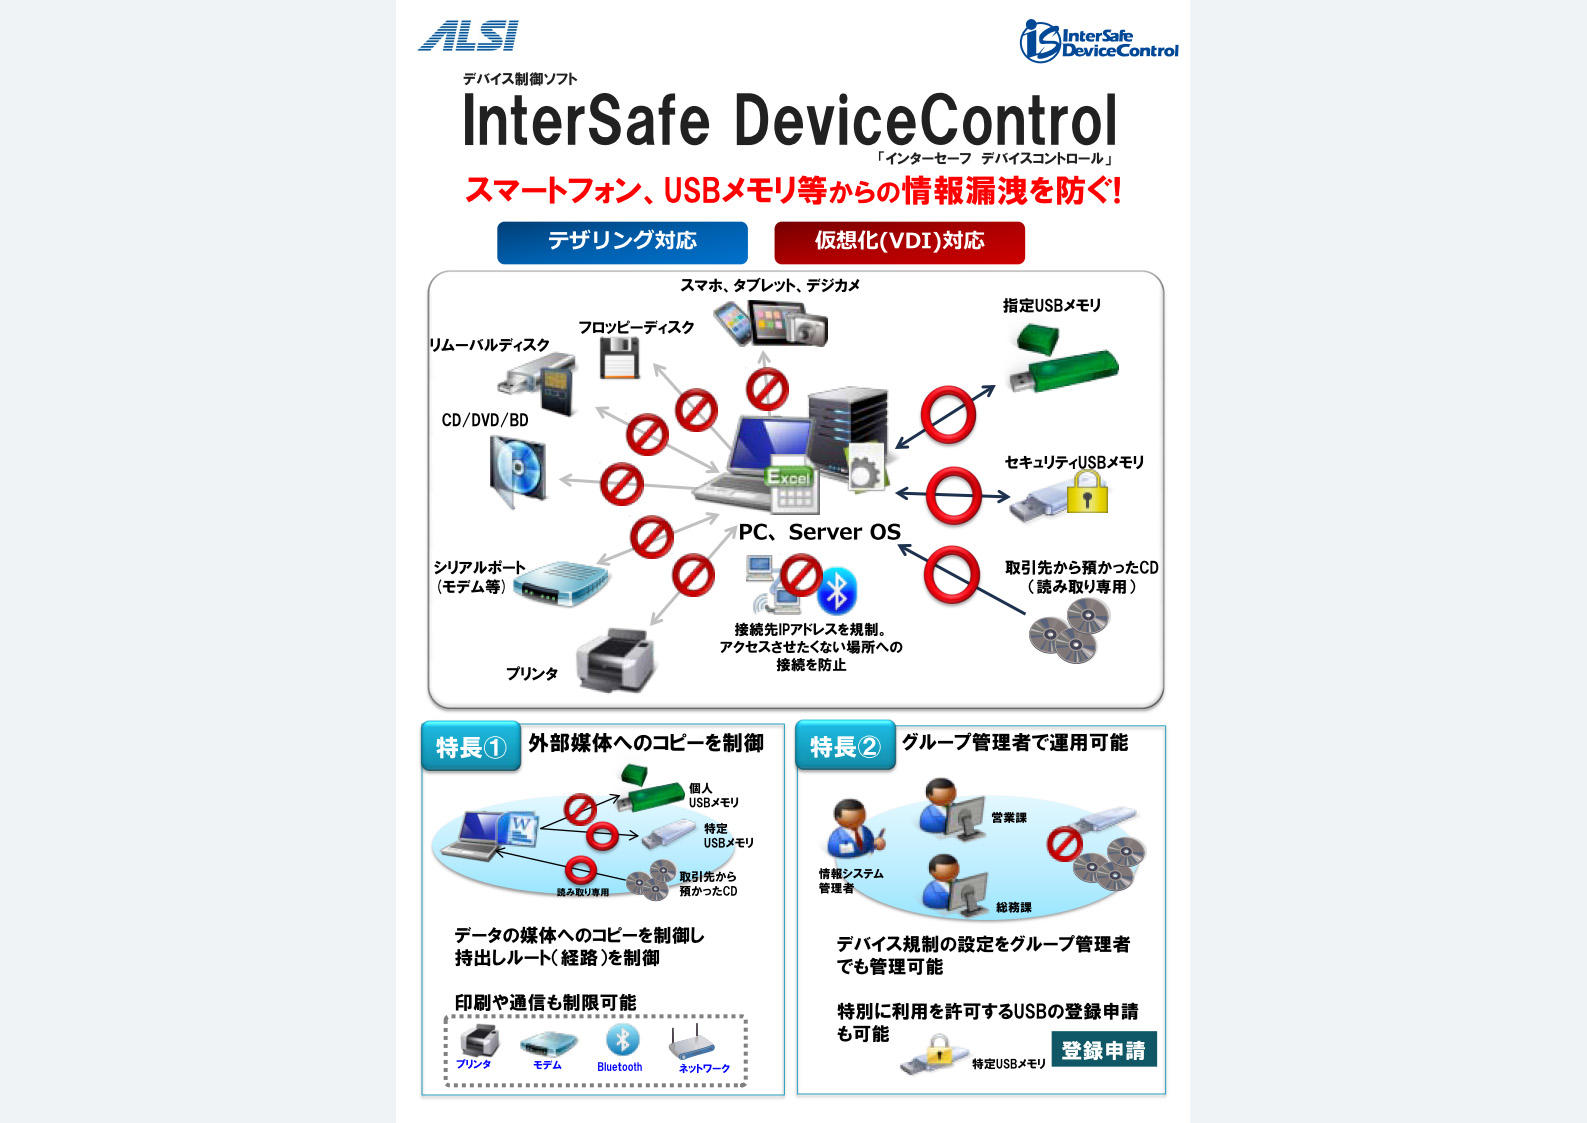 InterSafe DeviceControl パンフレット